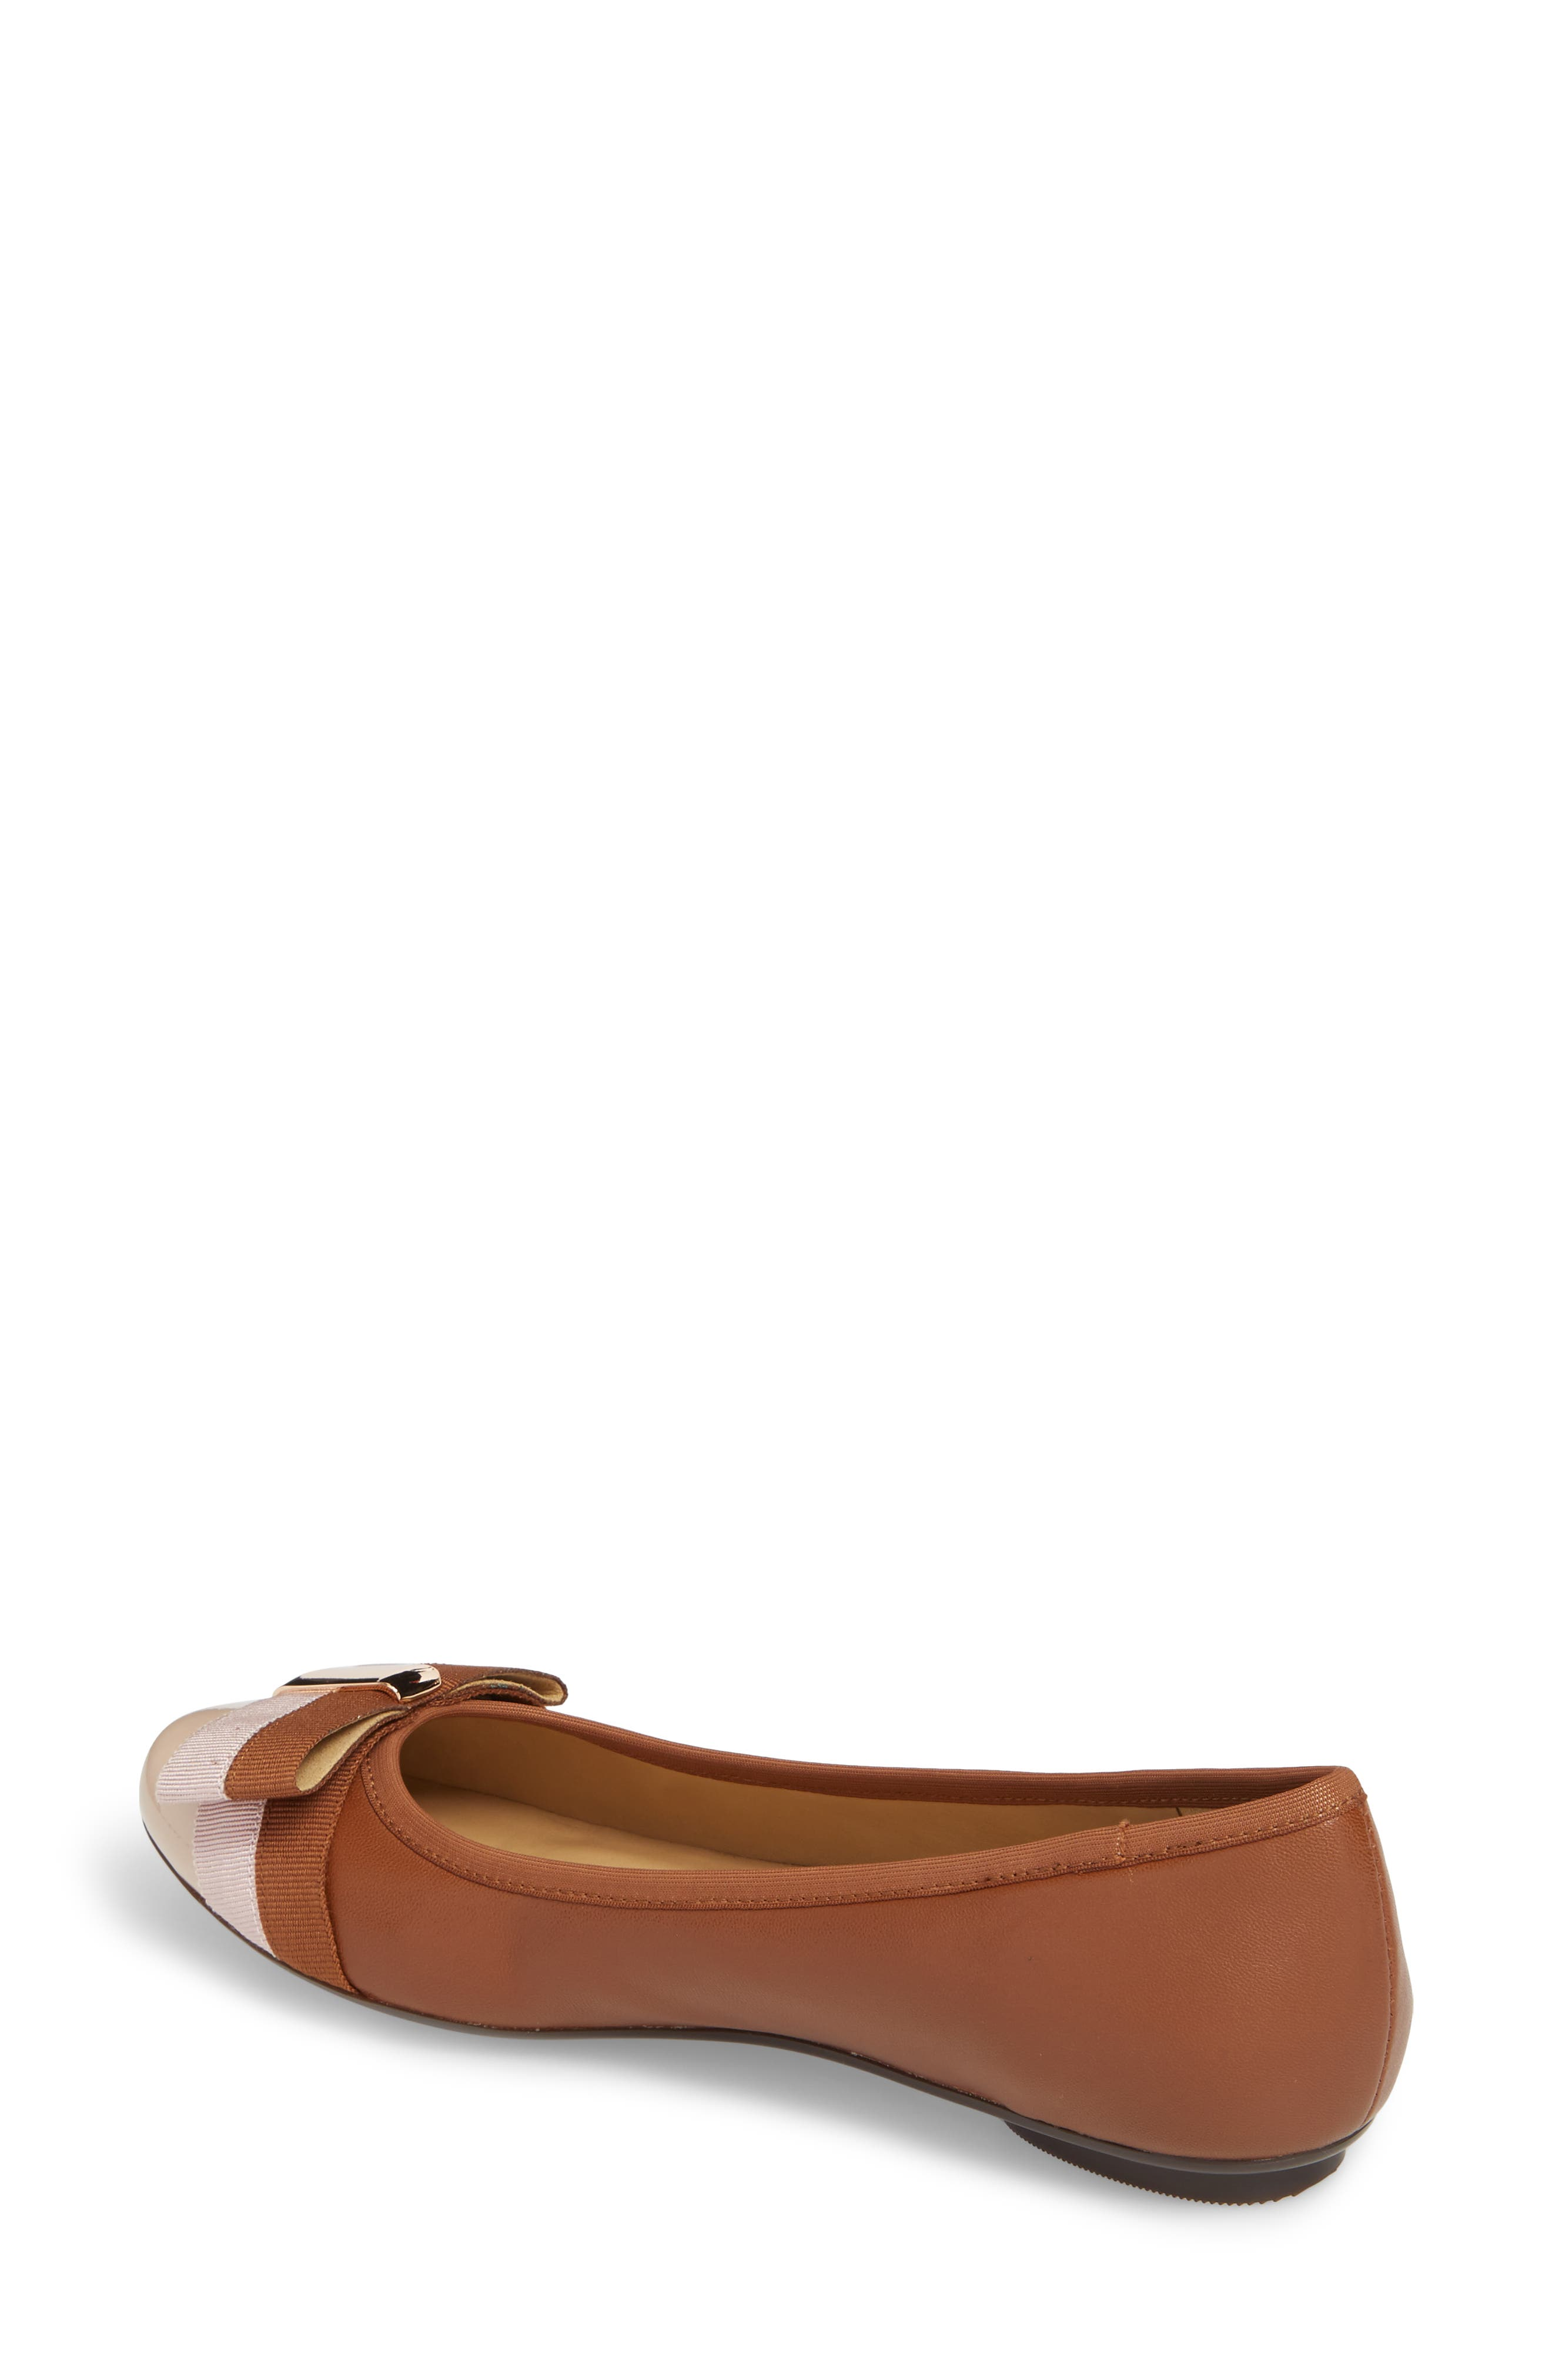 Salia Bow Flat,                             Alternate thumbnail 2, color,                             Cognac Leather